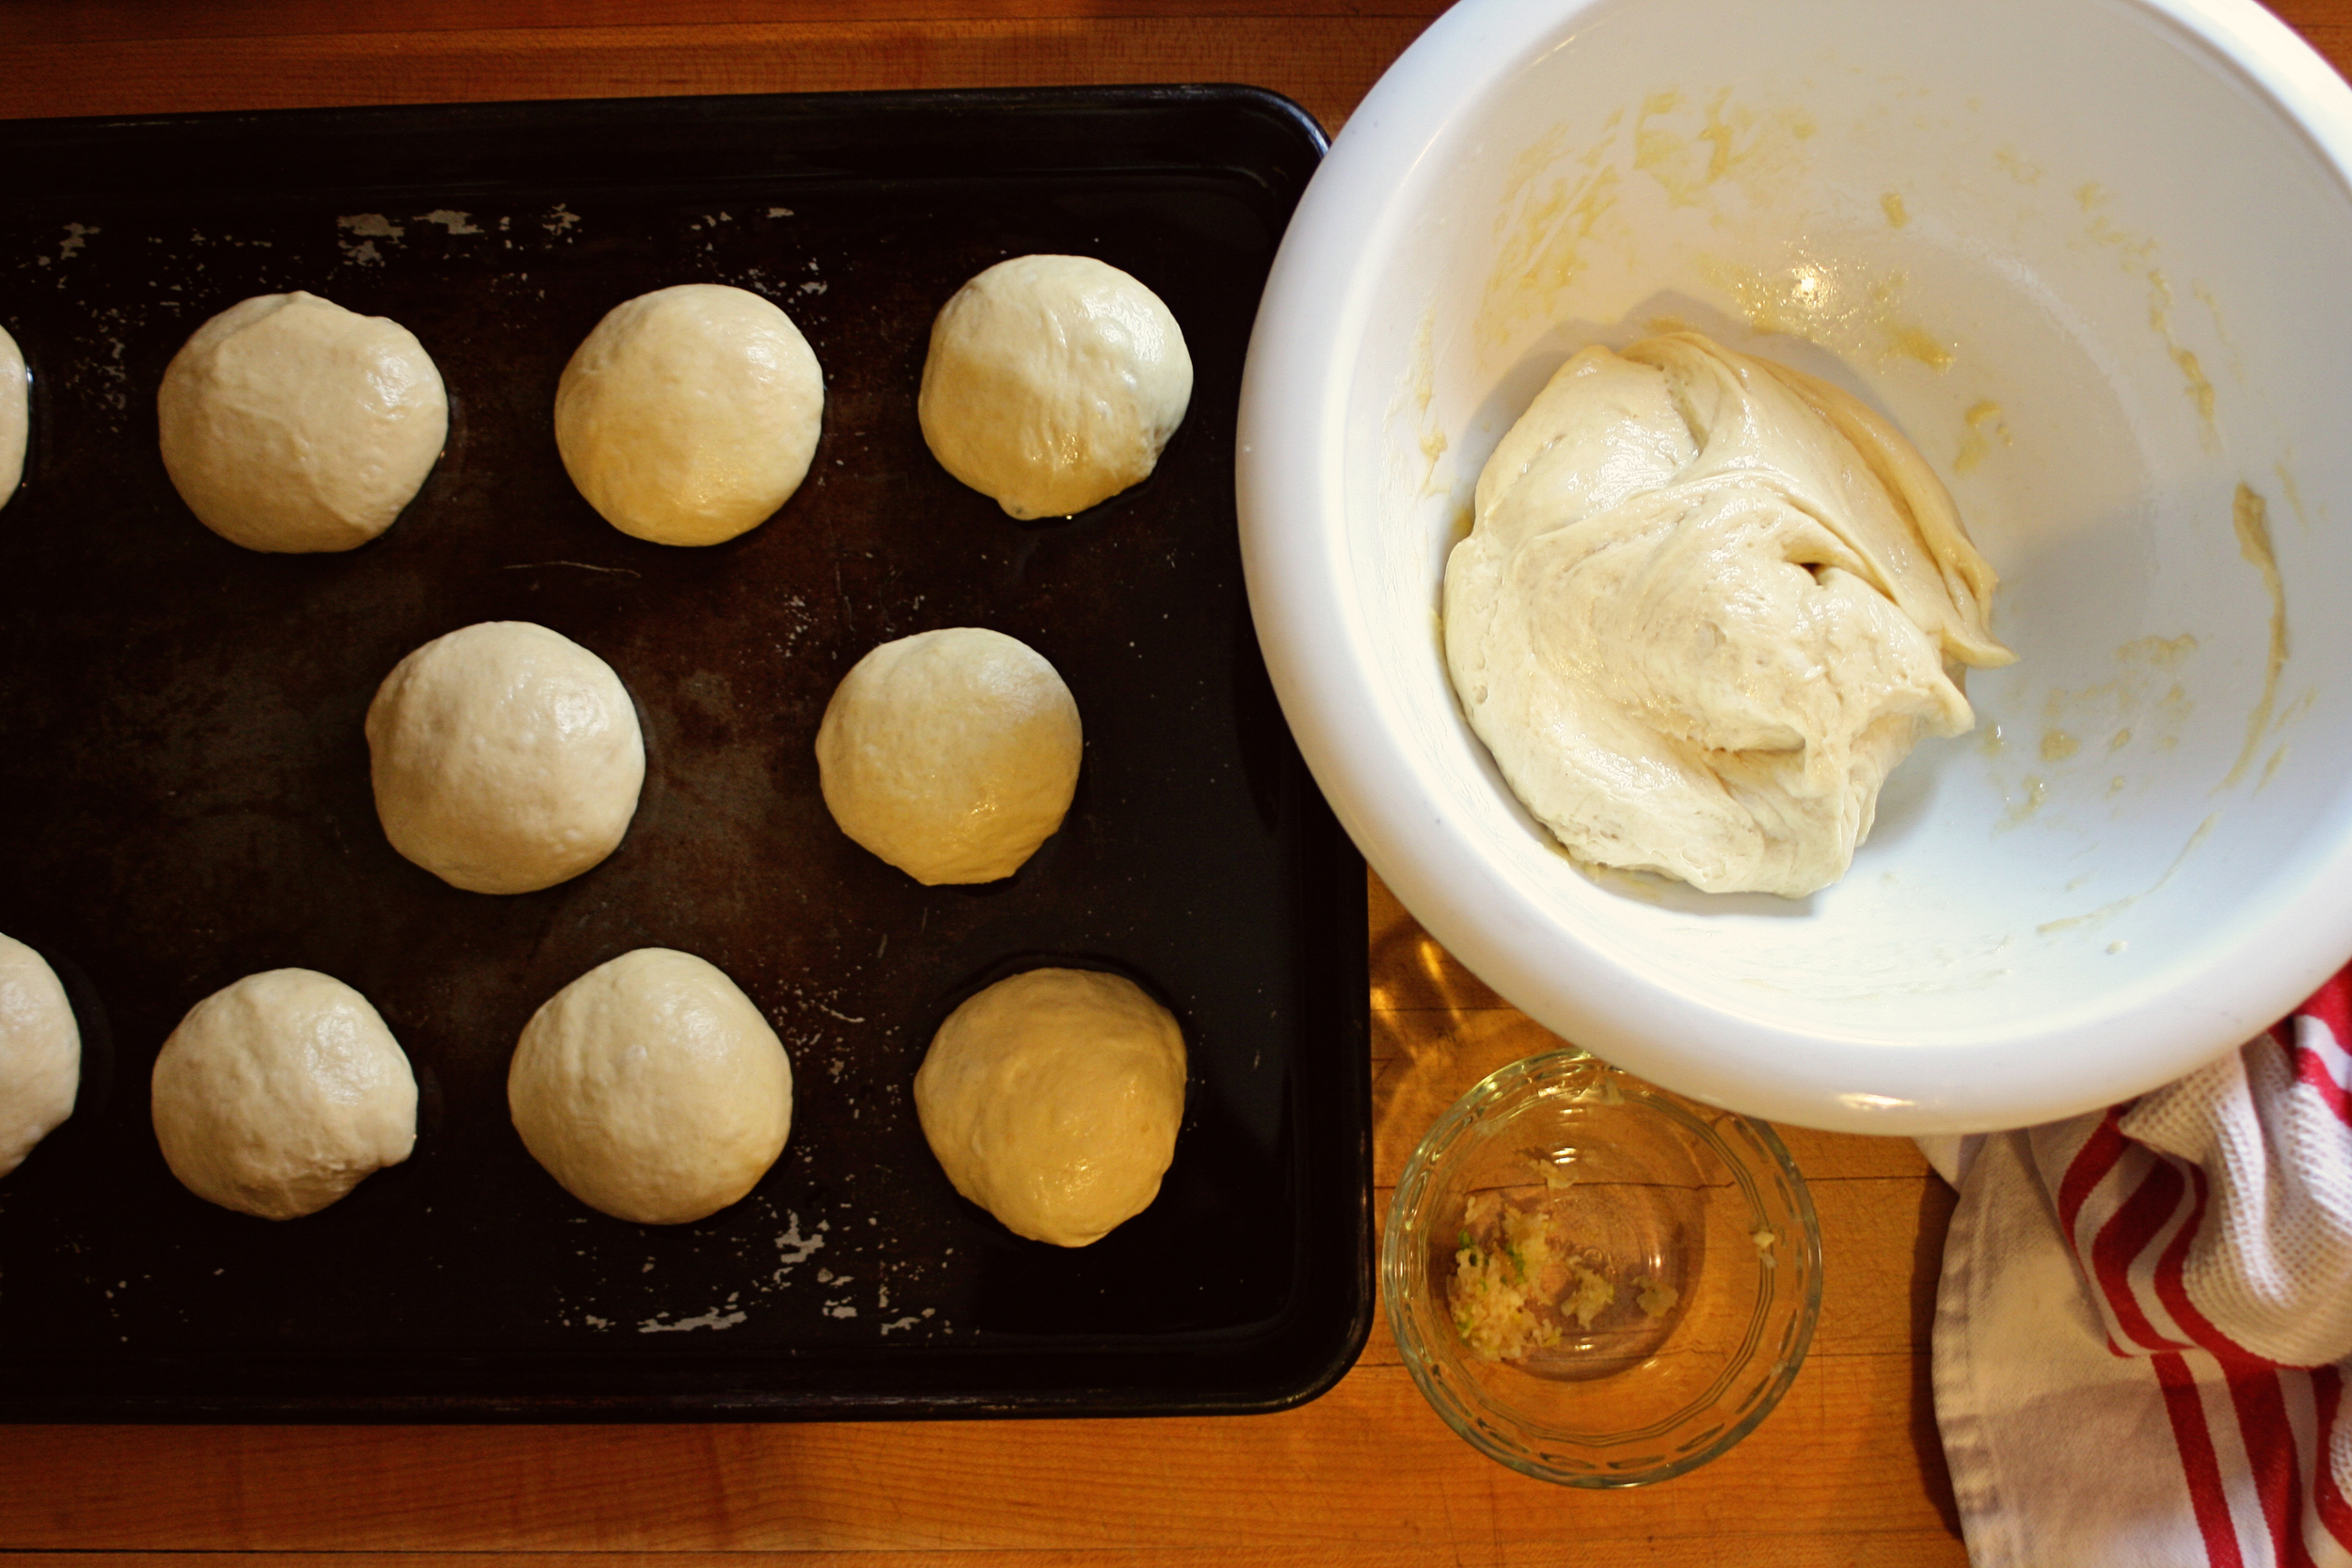 Forming the small dough balls and adding the garlic.